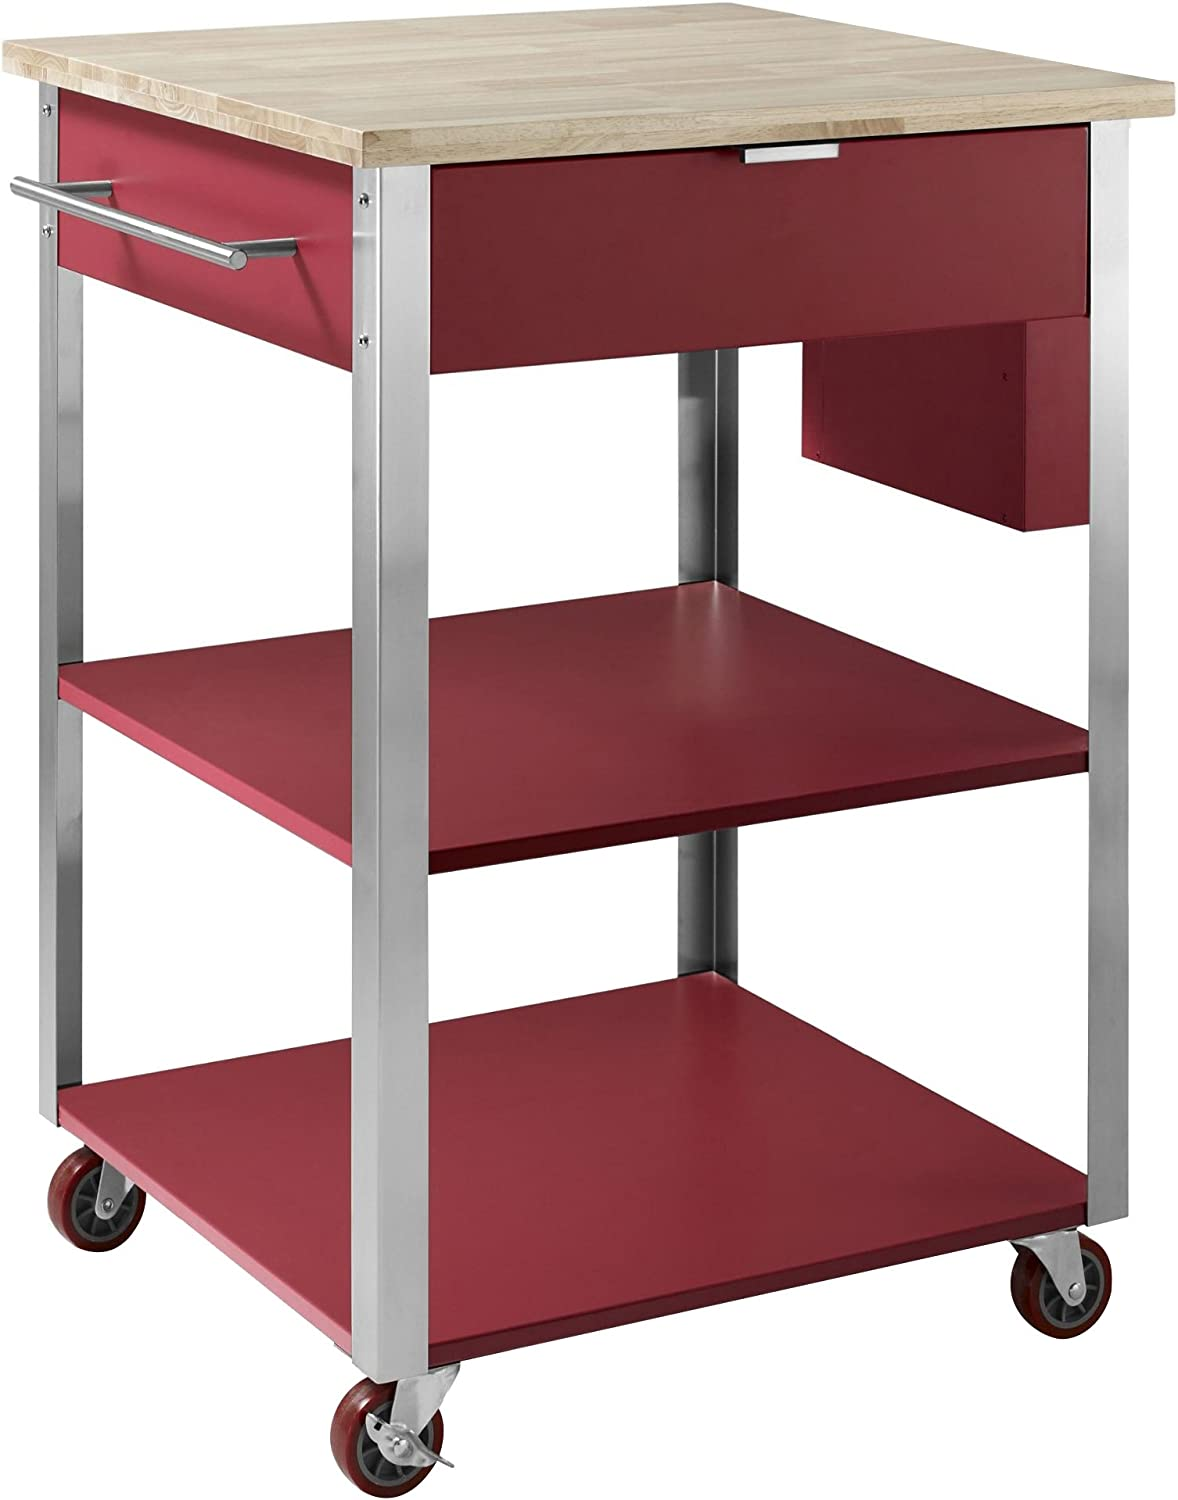 Crosley Furniture Culinary Prep Rolling Kitchen Cart - Natural/Red